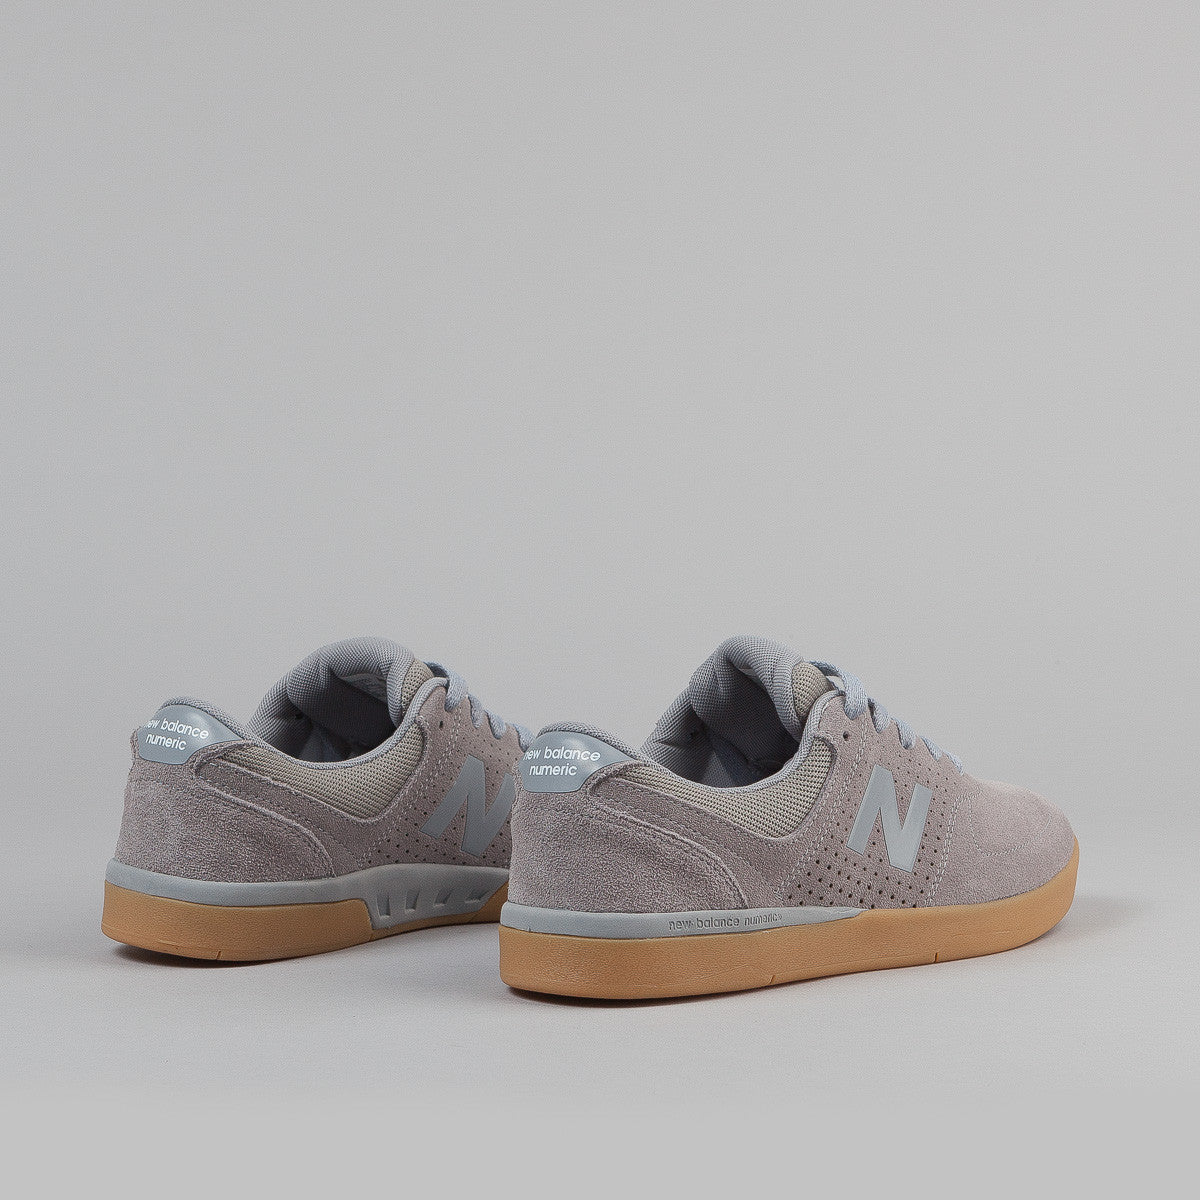 New Balance Numeric PJ Stratford 533 Shoes - Steel / Gum